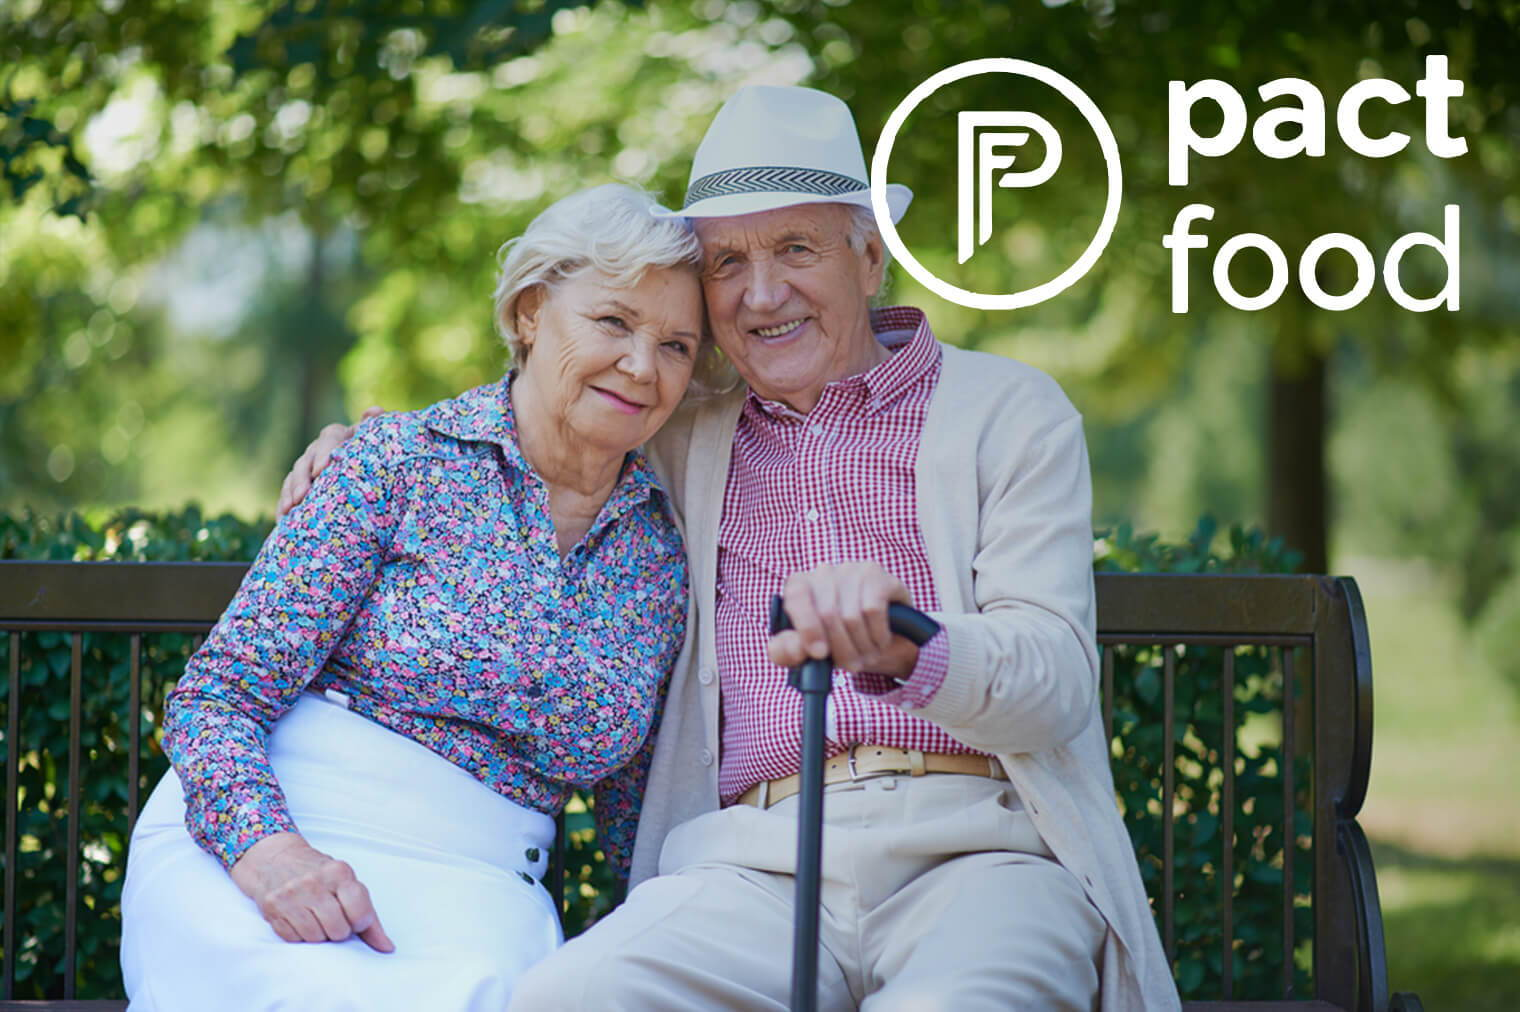 Elderly Couple Sitting In A Park